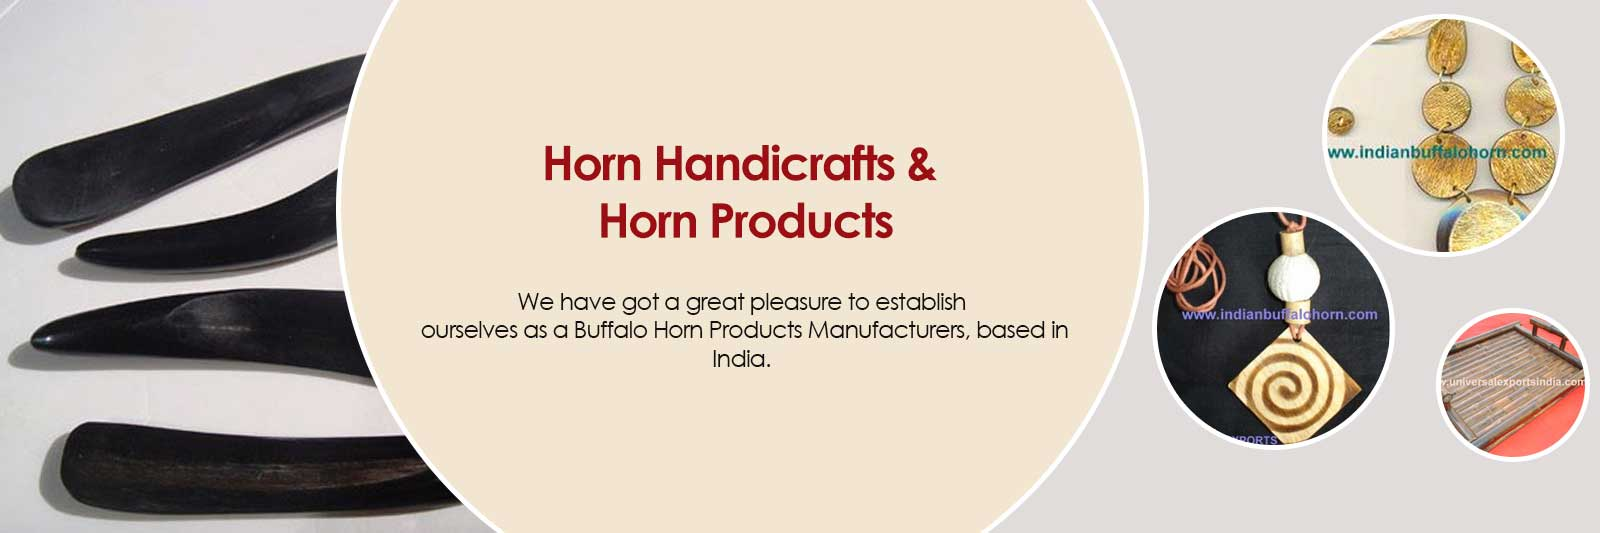 Horn Archery Product Exporters